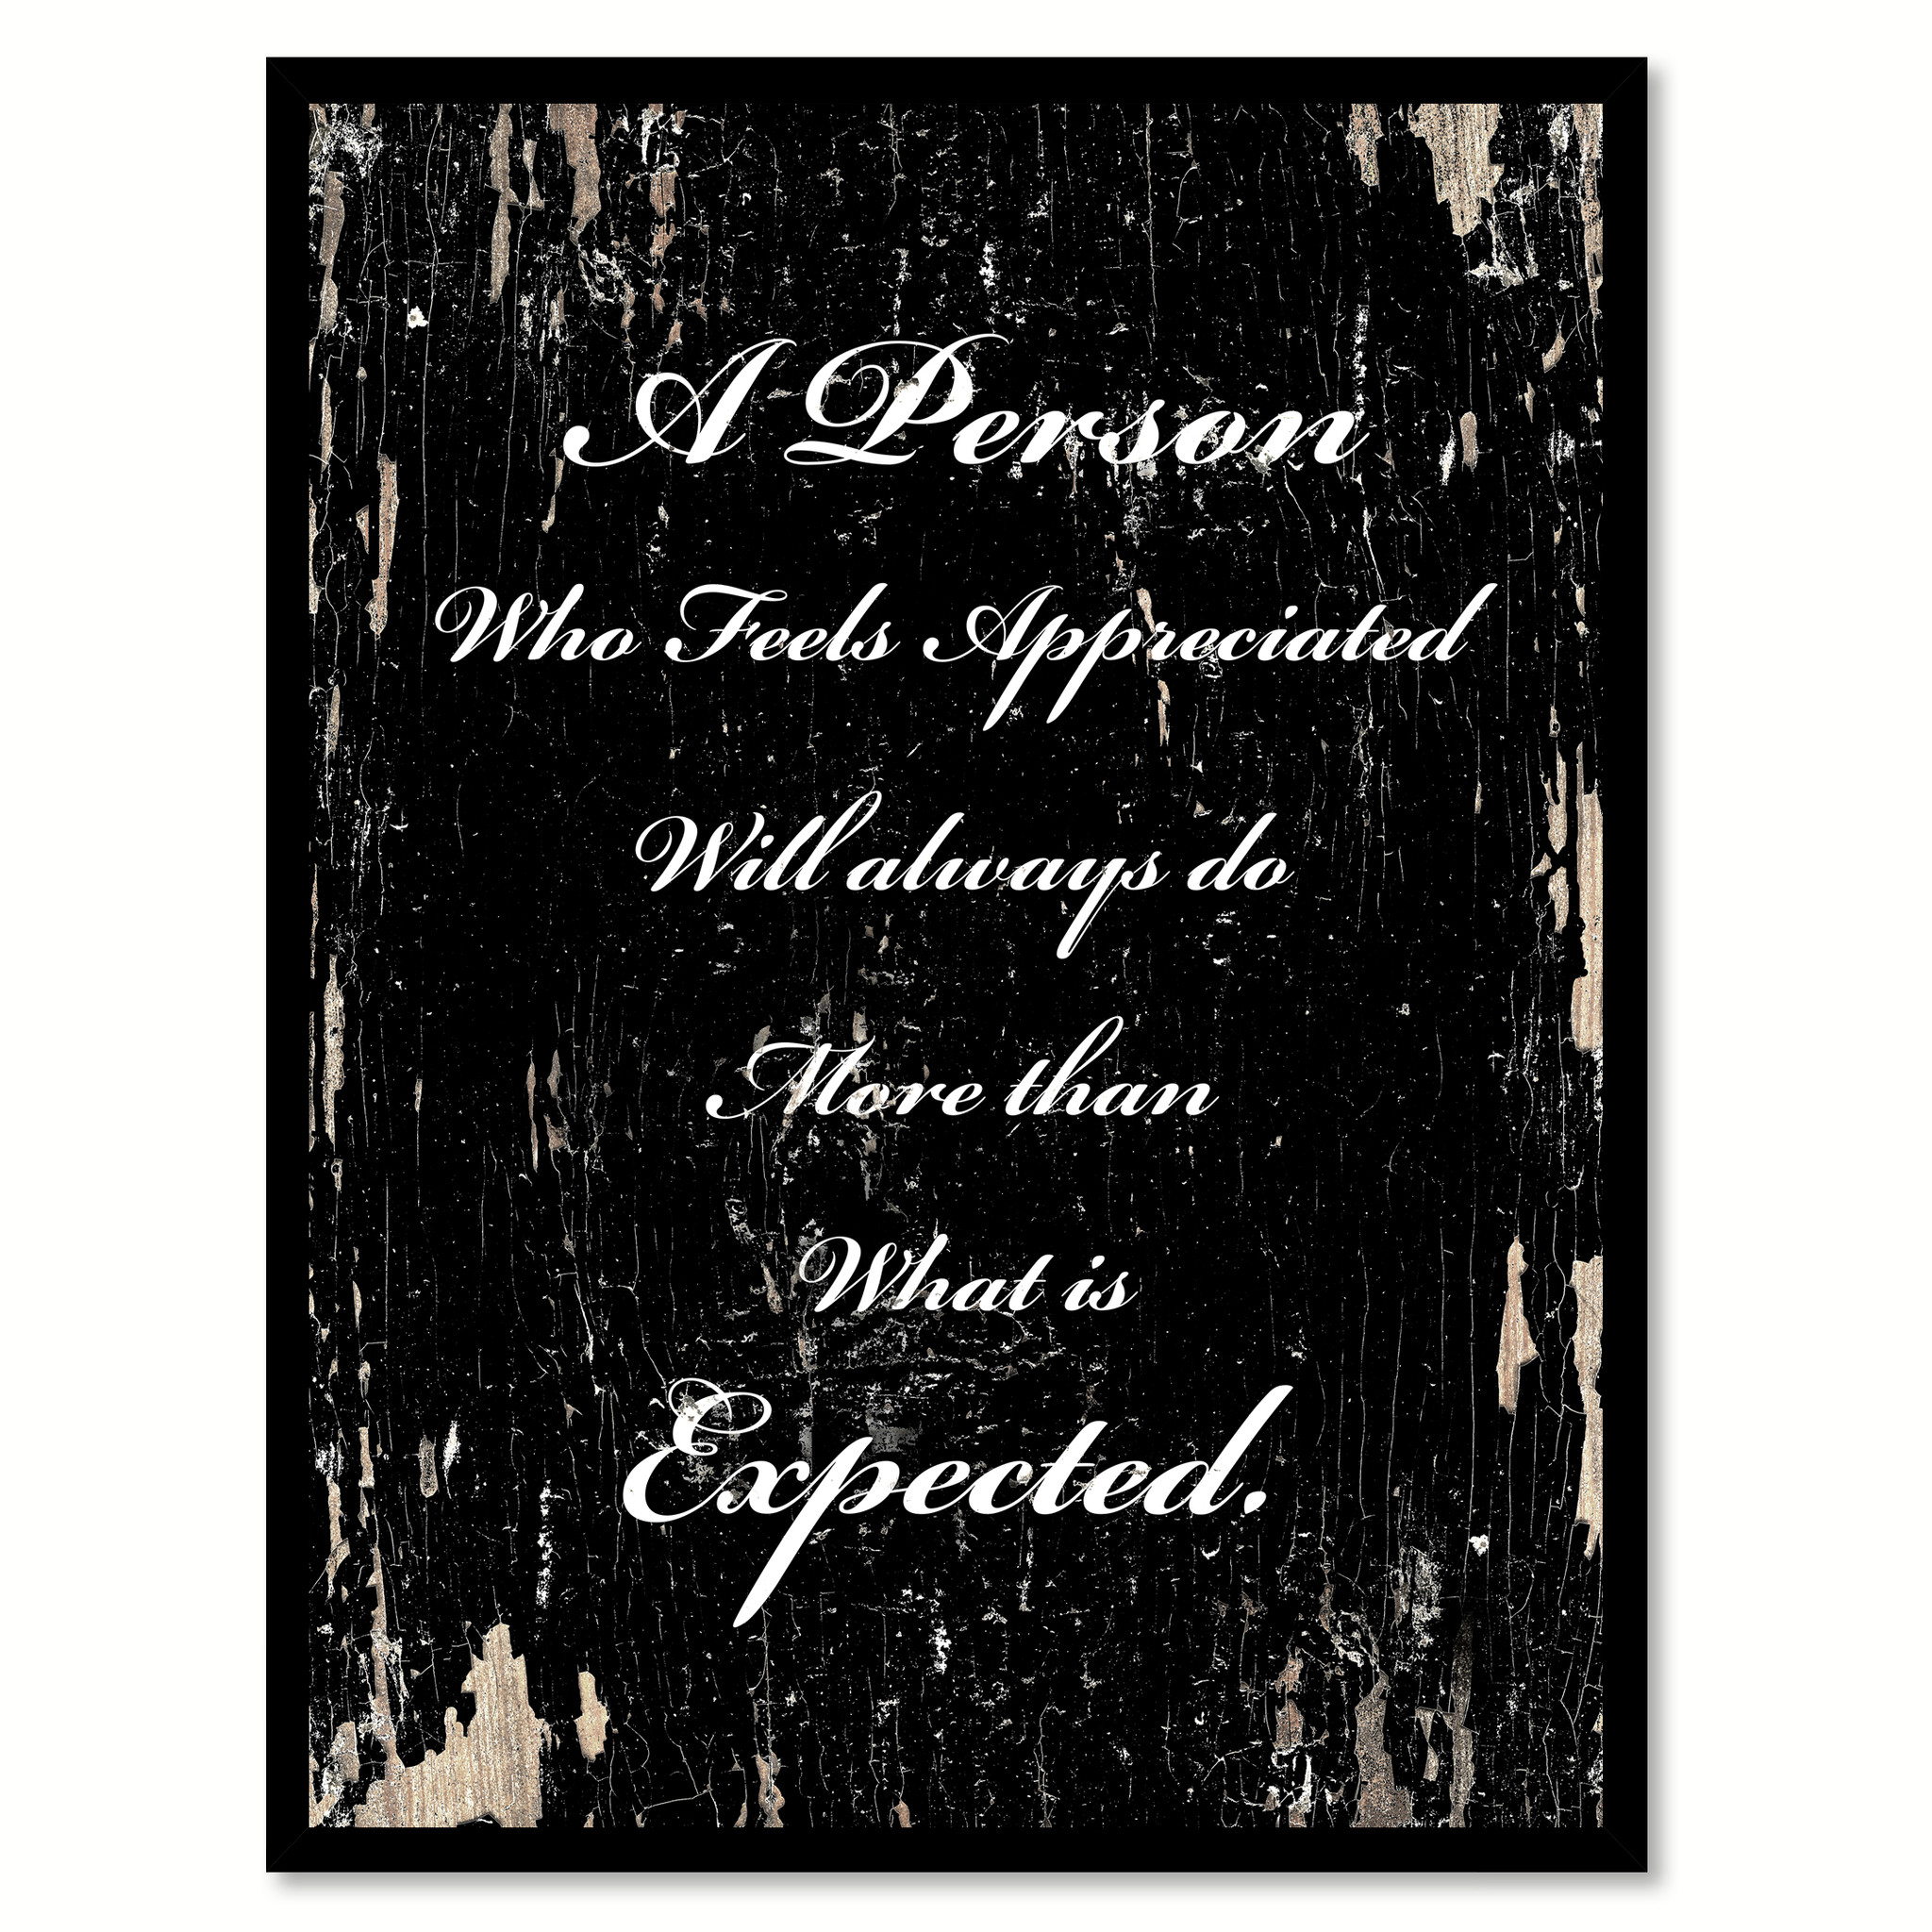 "A Person Who Never Made A Mistake Albert Einstein Quote Saying Canvas Print with Picture Frame Home Decor Wall Art Gift Ideas 111435 - 7""x9\"""